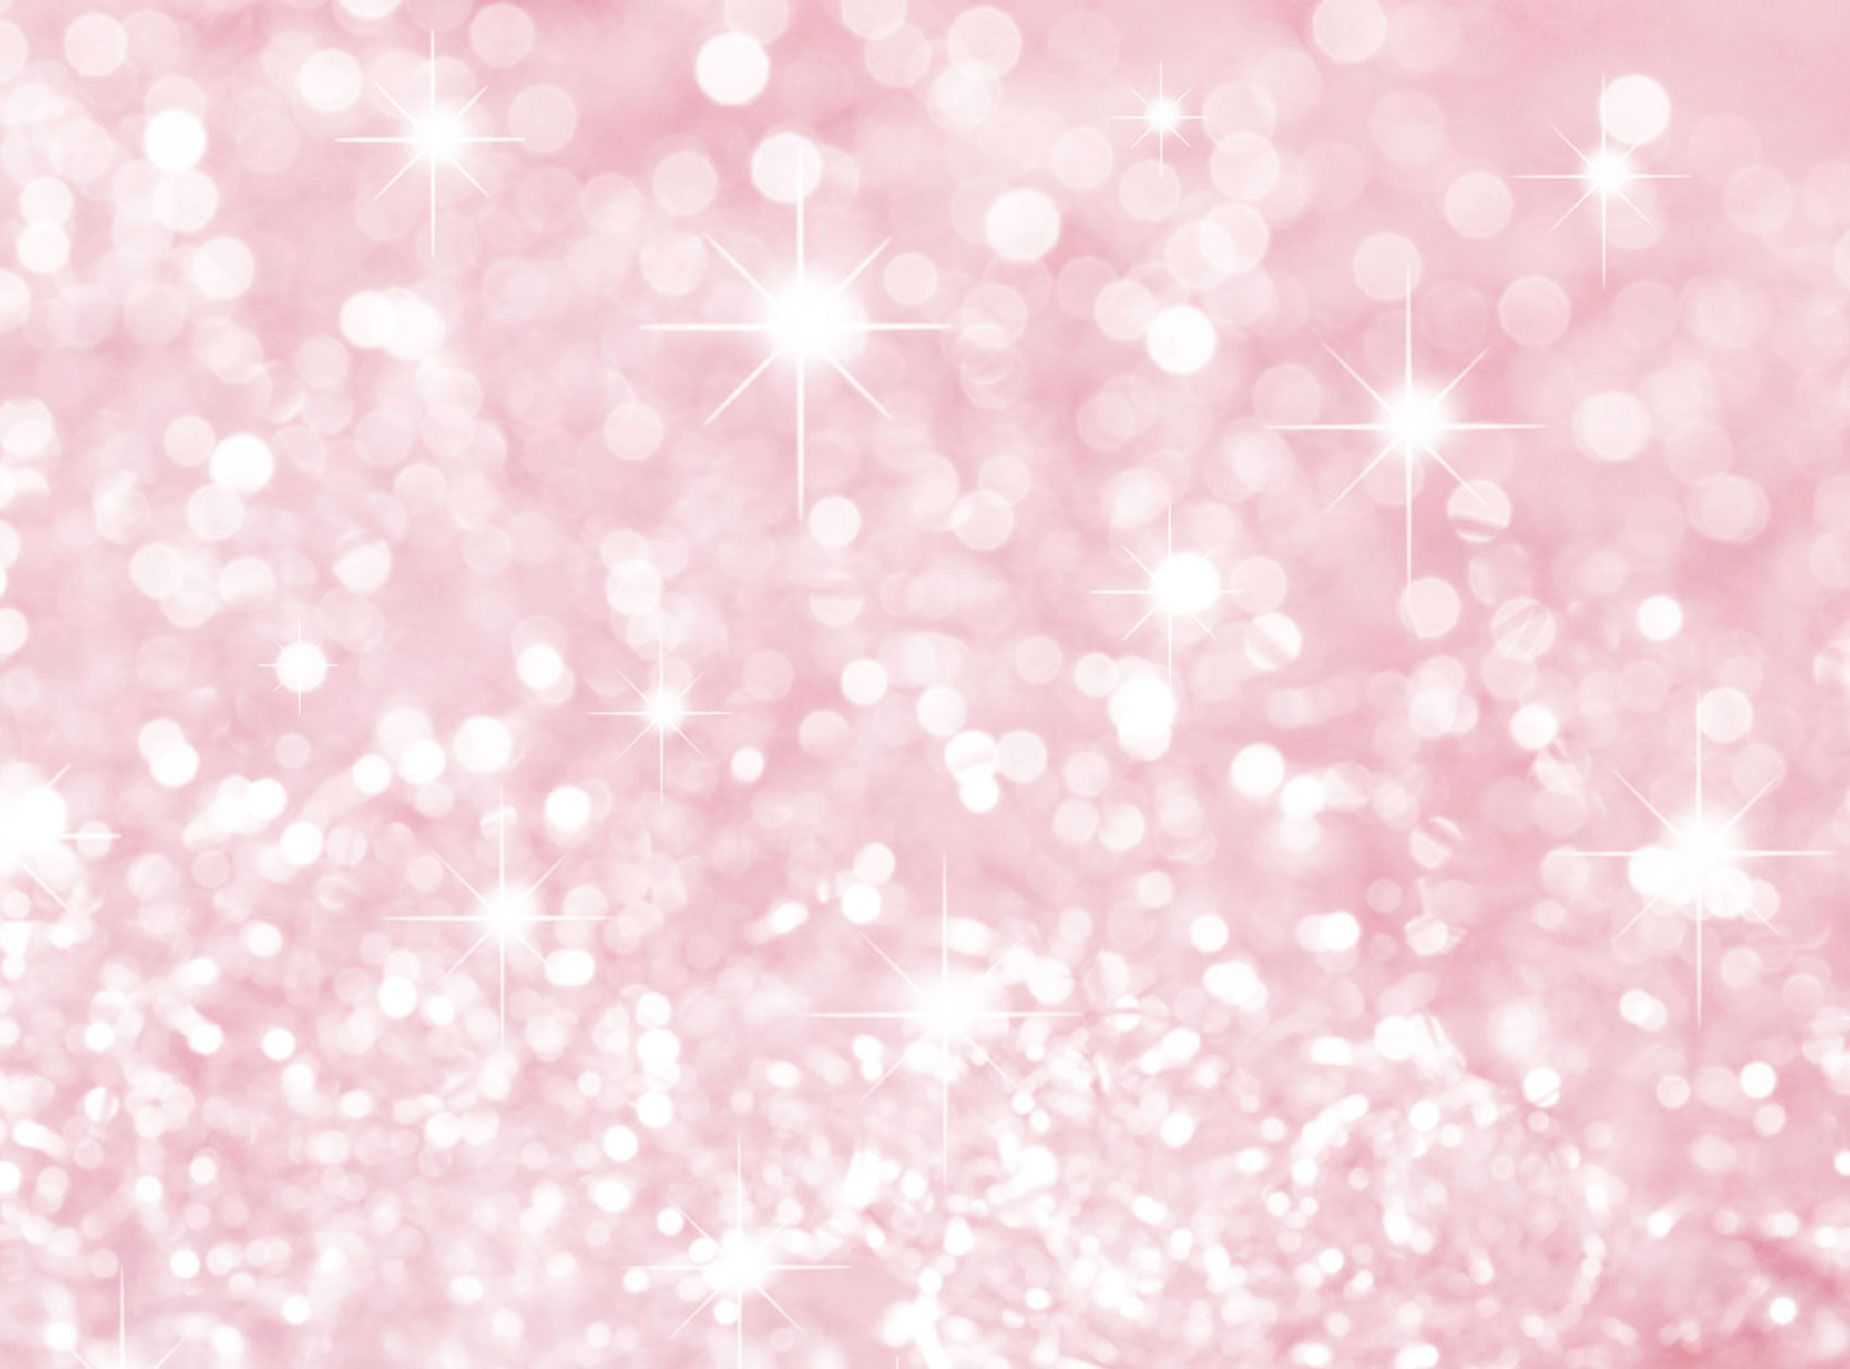 christmasbackground.jpg Pink sparkle background